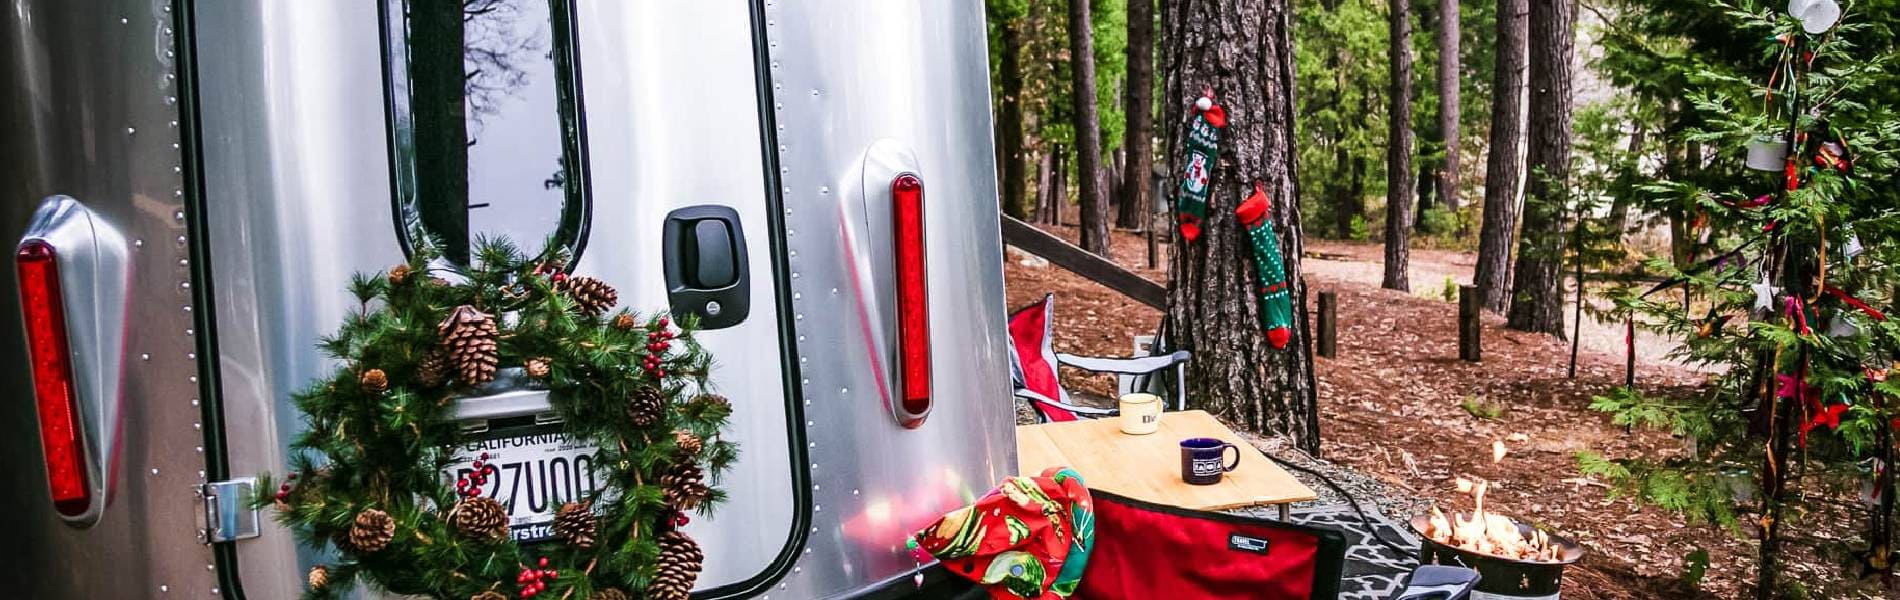 S'more Good Stuff: The Best Gifts for RVers and Campers and Other RV News